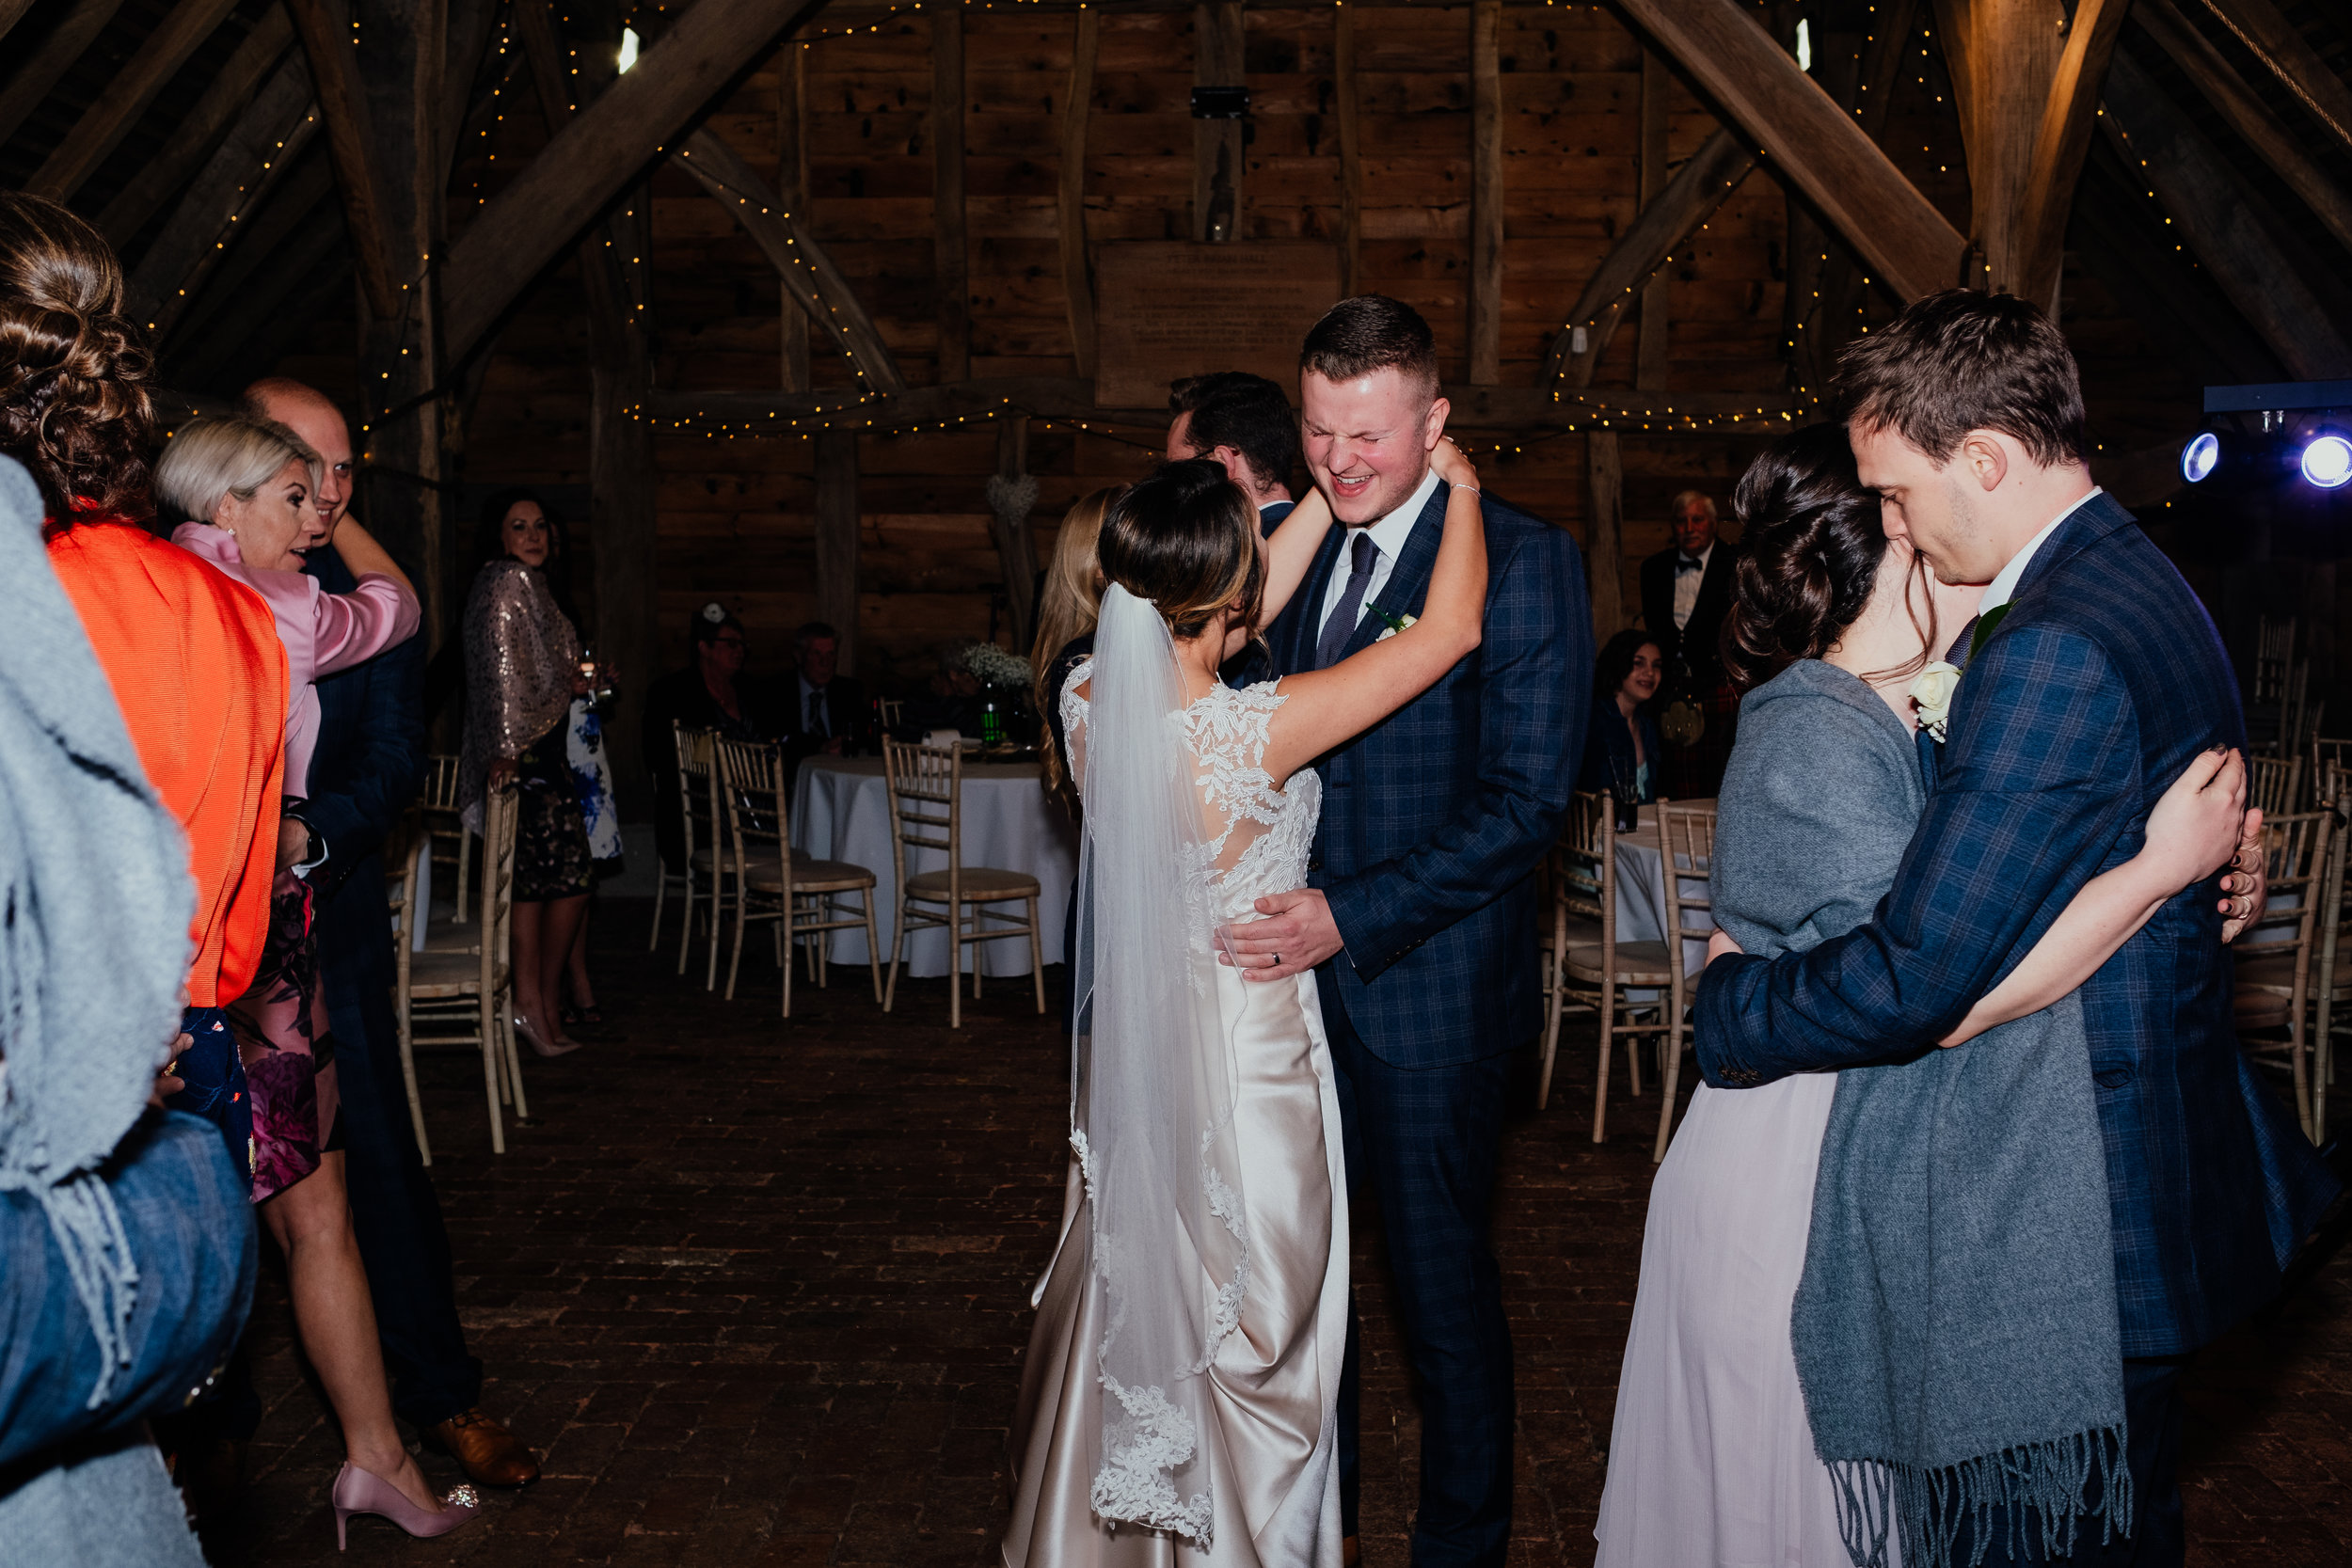 Wedding guests and bride and groom dancing at Gildings Barn